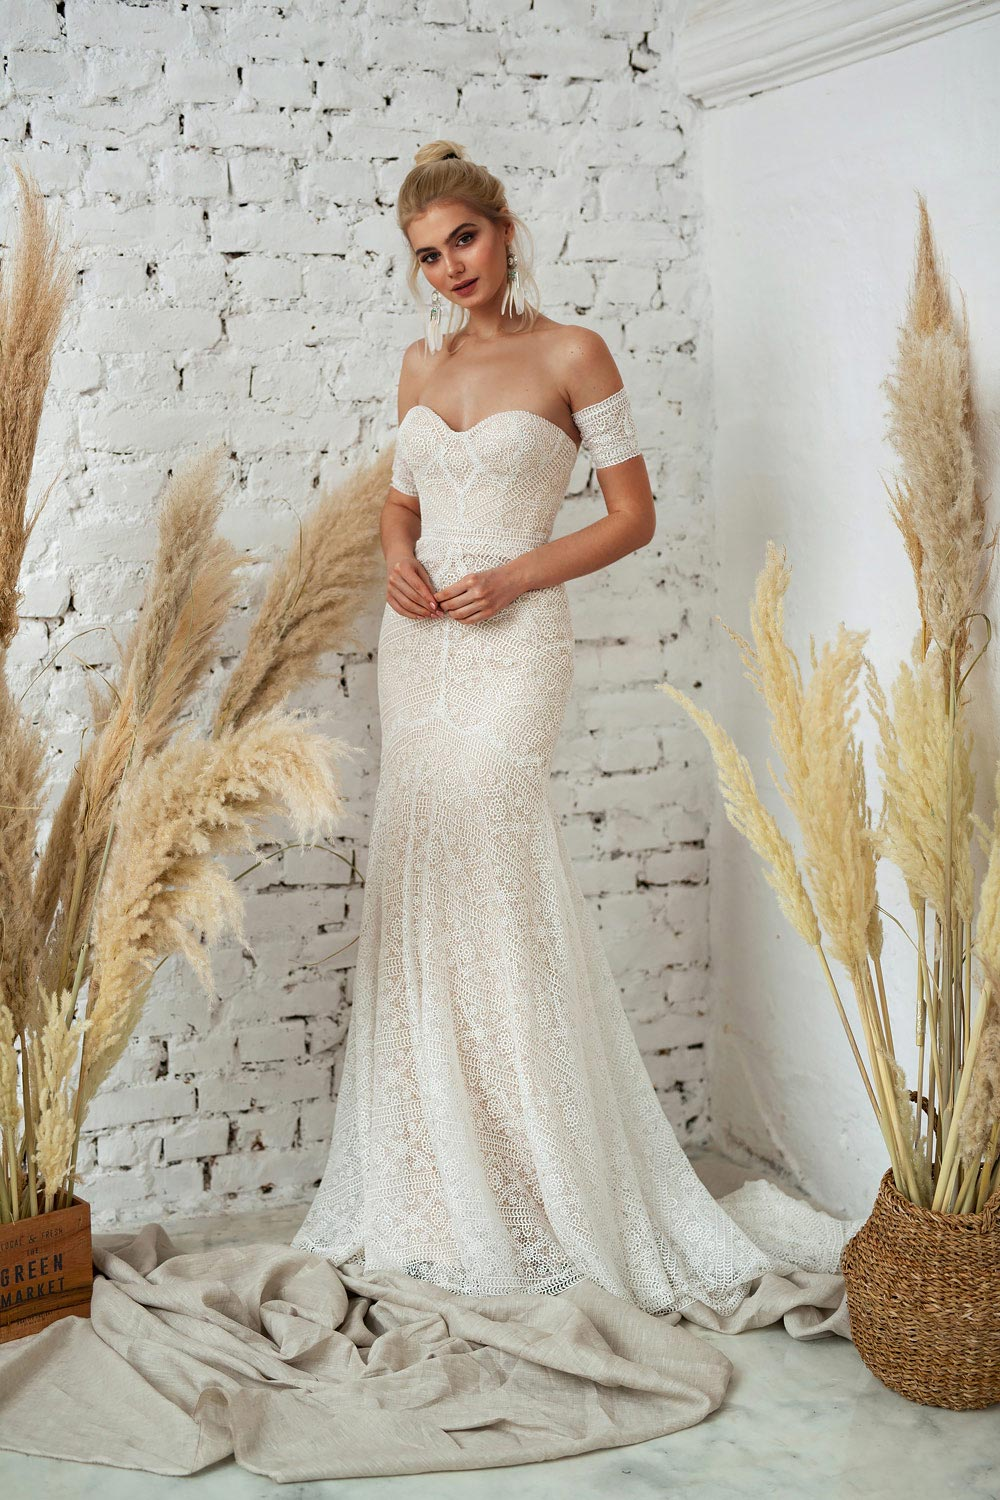 boho wedding dress, wedding dress shop